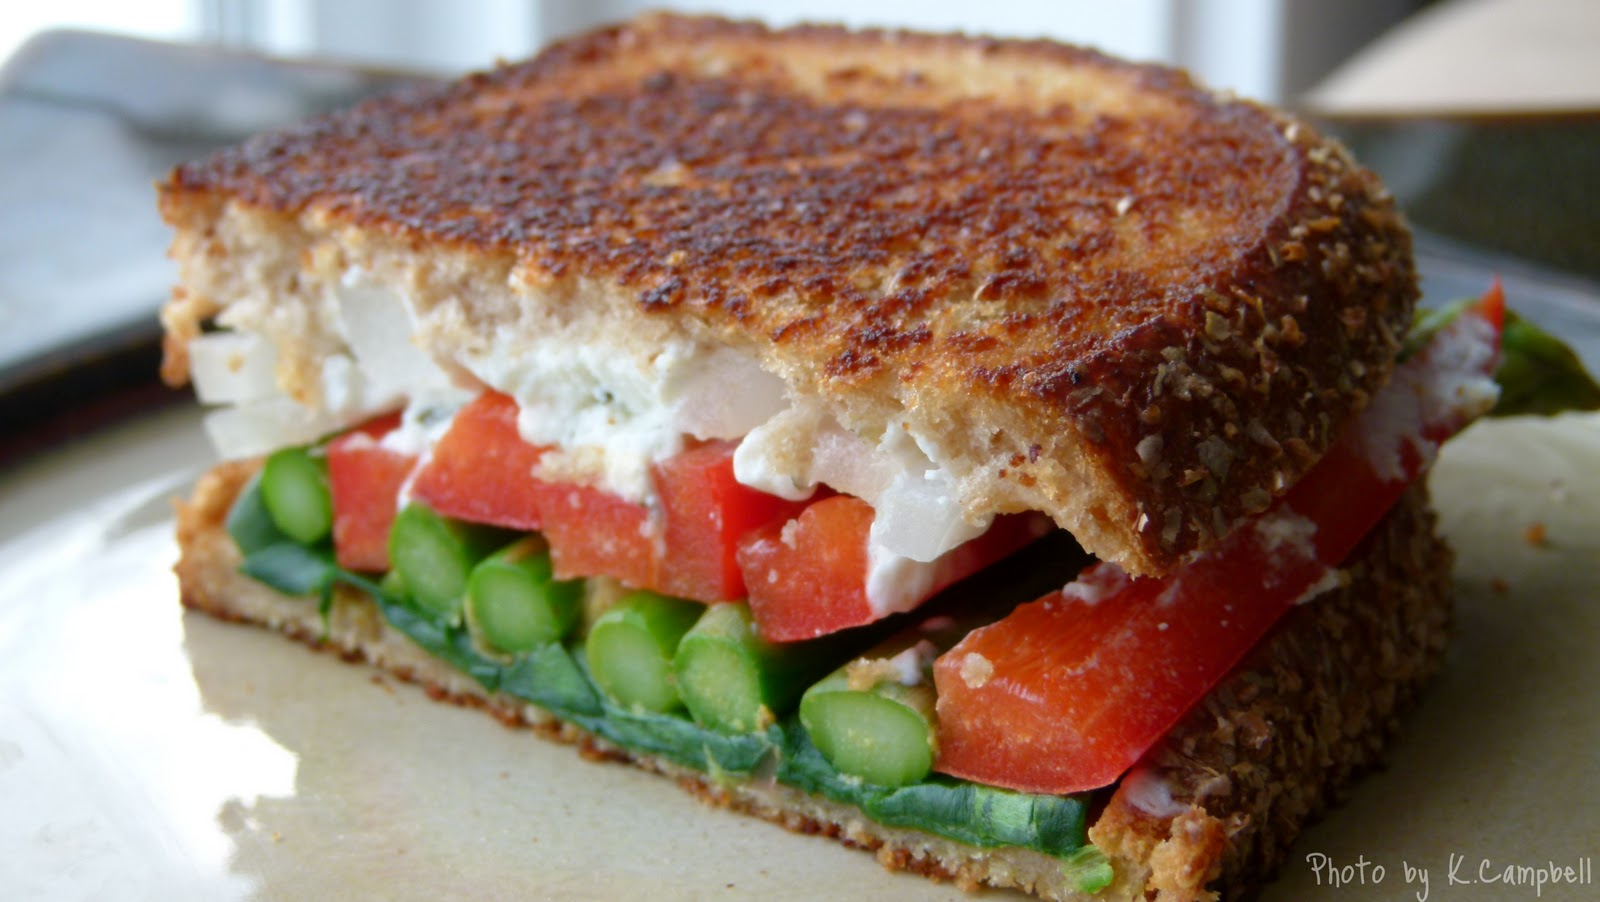 Oscar's Sandwich: Grilled Goat Cheese and Veggie Sandwich